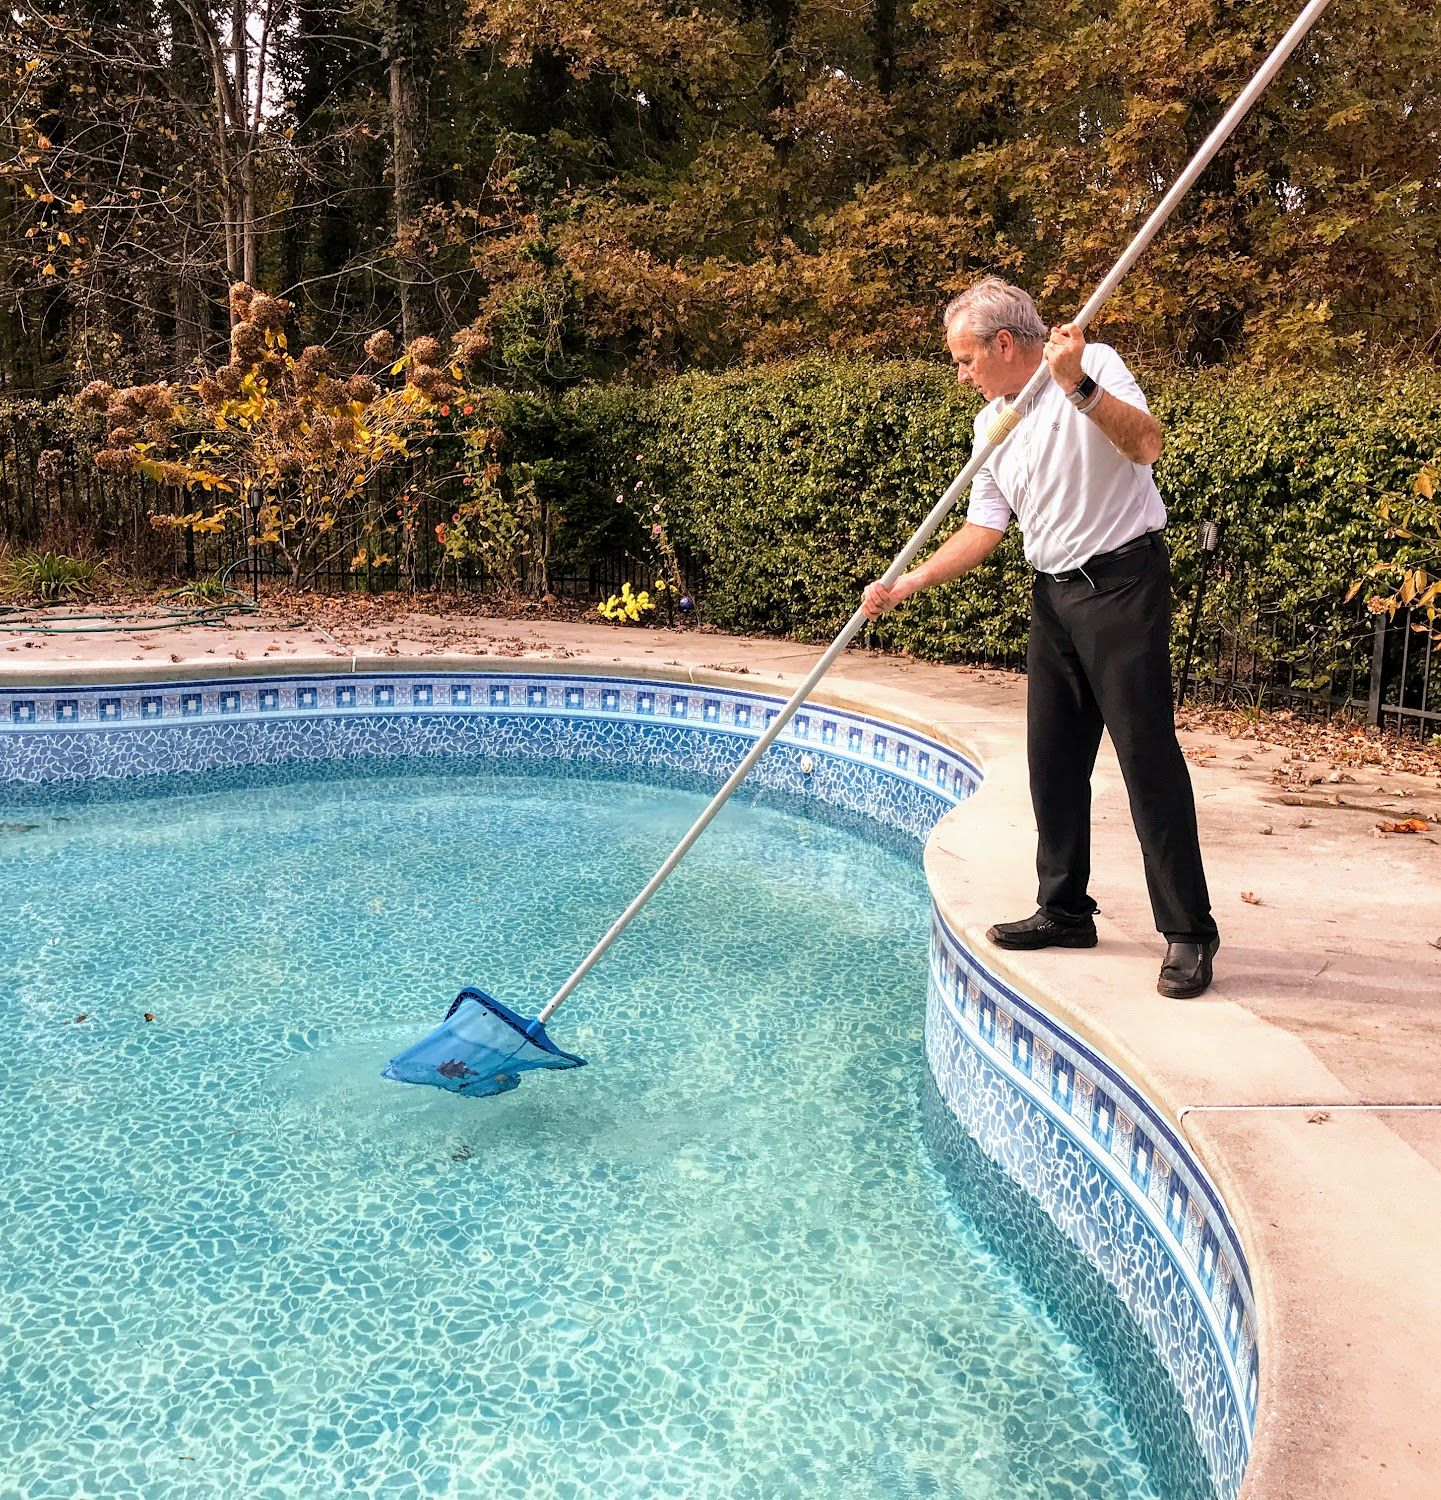 Swimming Pool Cleaning Equipment Clear Water Minimum Maintenance Swimming Pool Cleaning Pool Cleaning Tips Pool